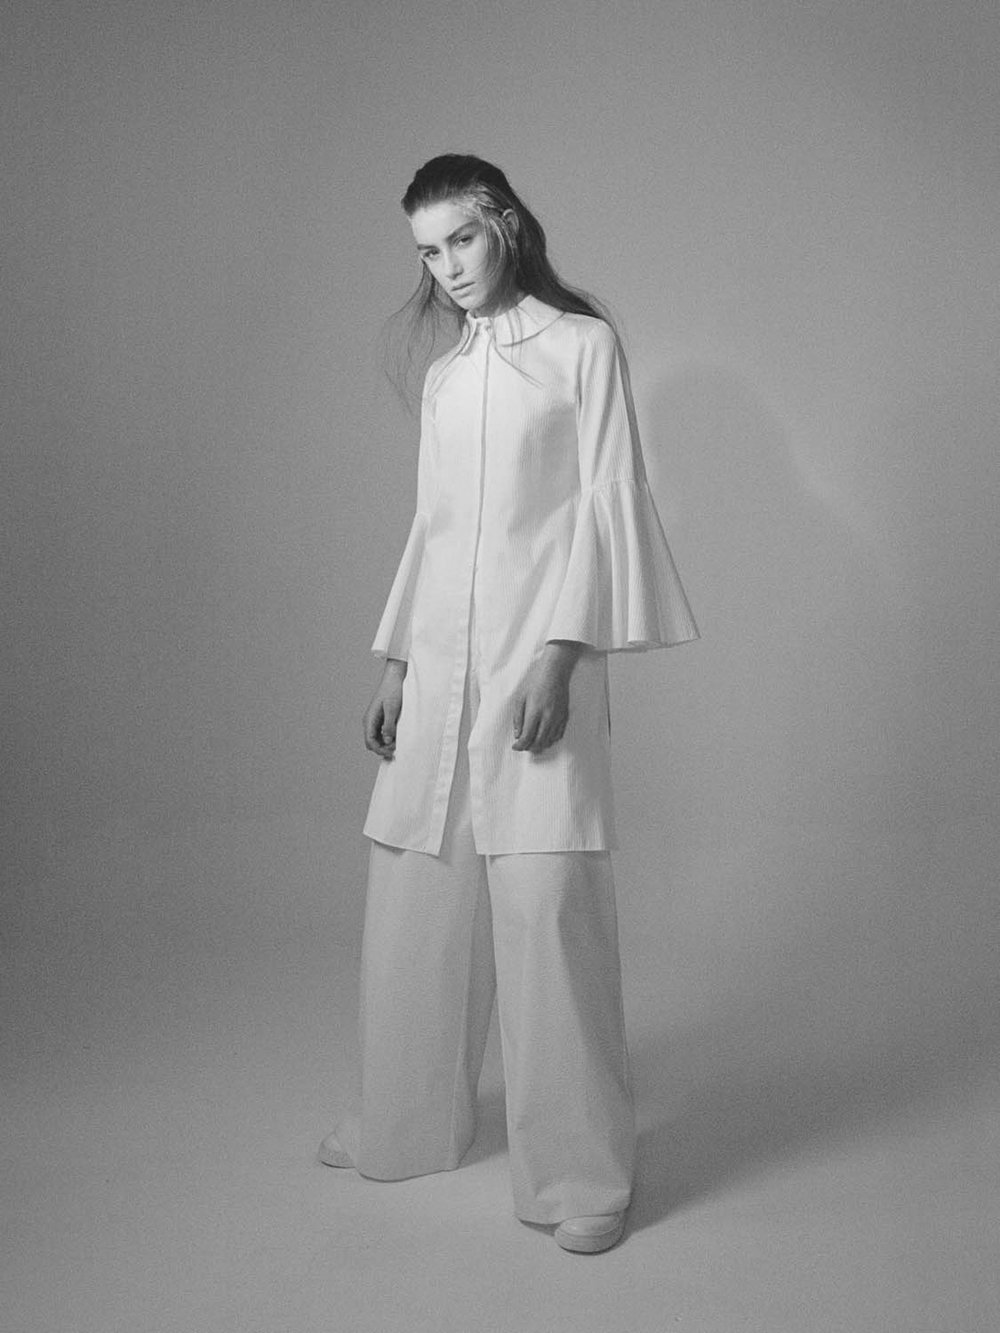 Optic white cotton shirt dress with satin stripes from Alistar James White cotton trousers with straight leg from Xiao Li White sneakers from Fengchen Wang